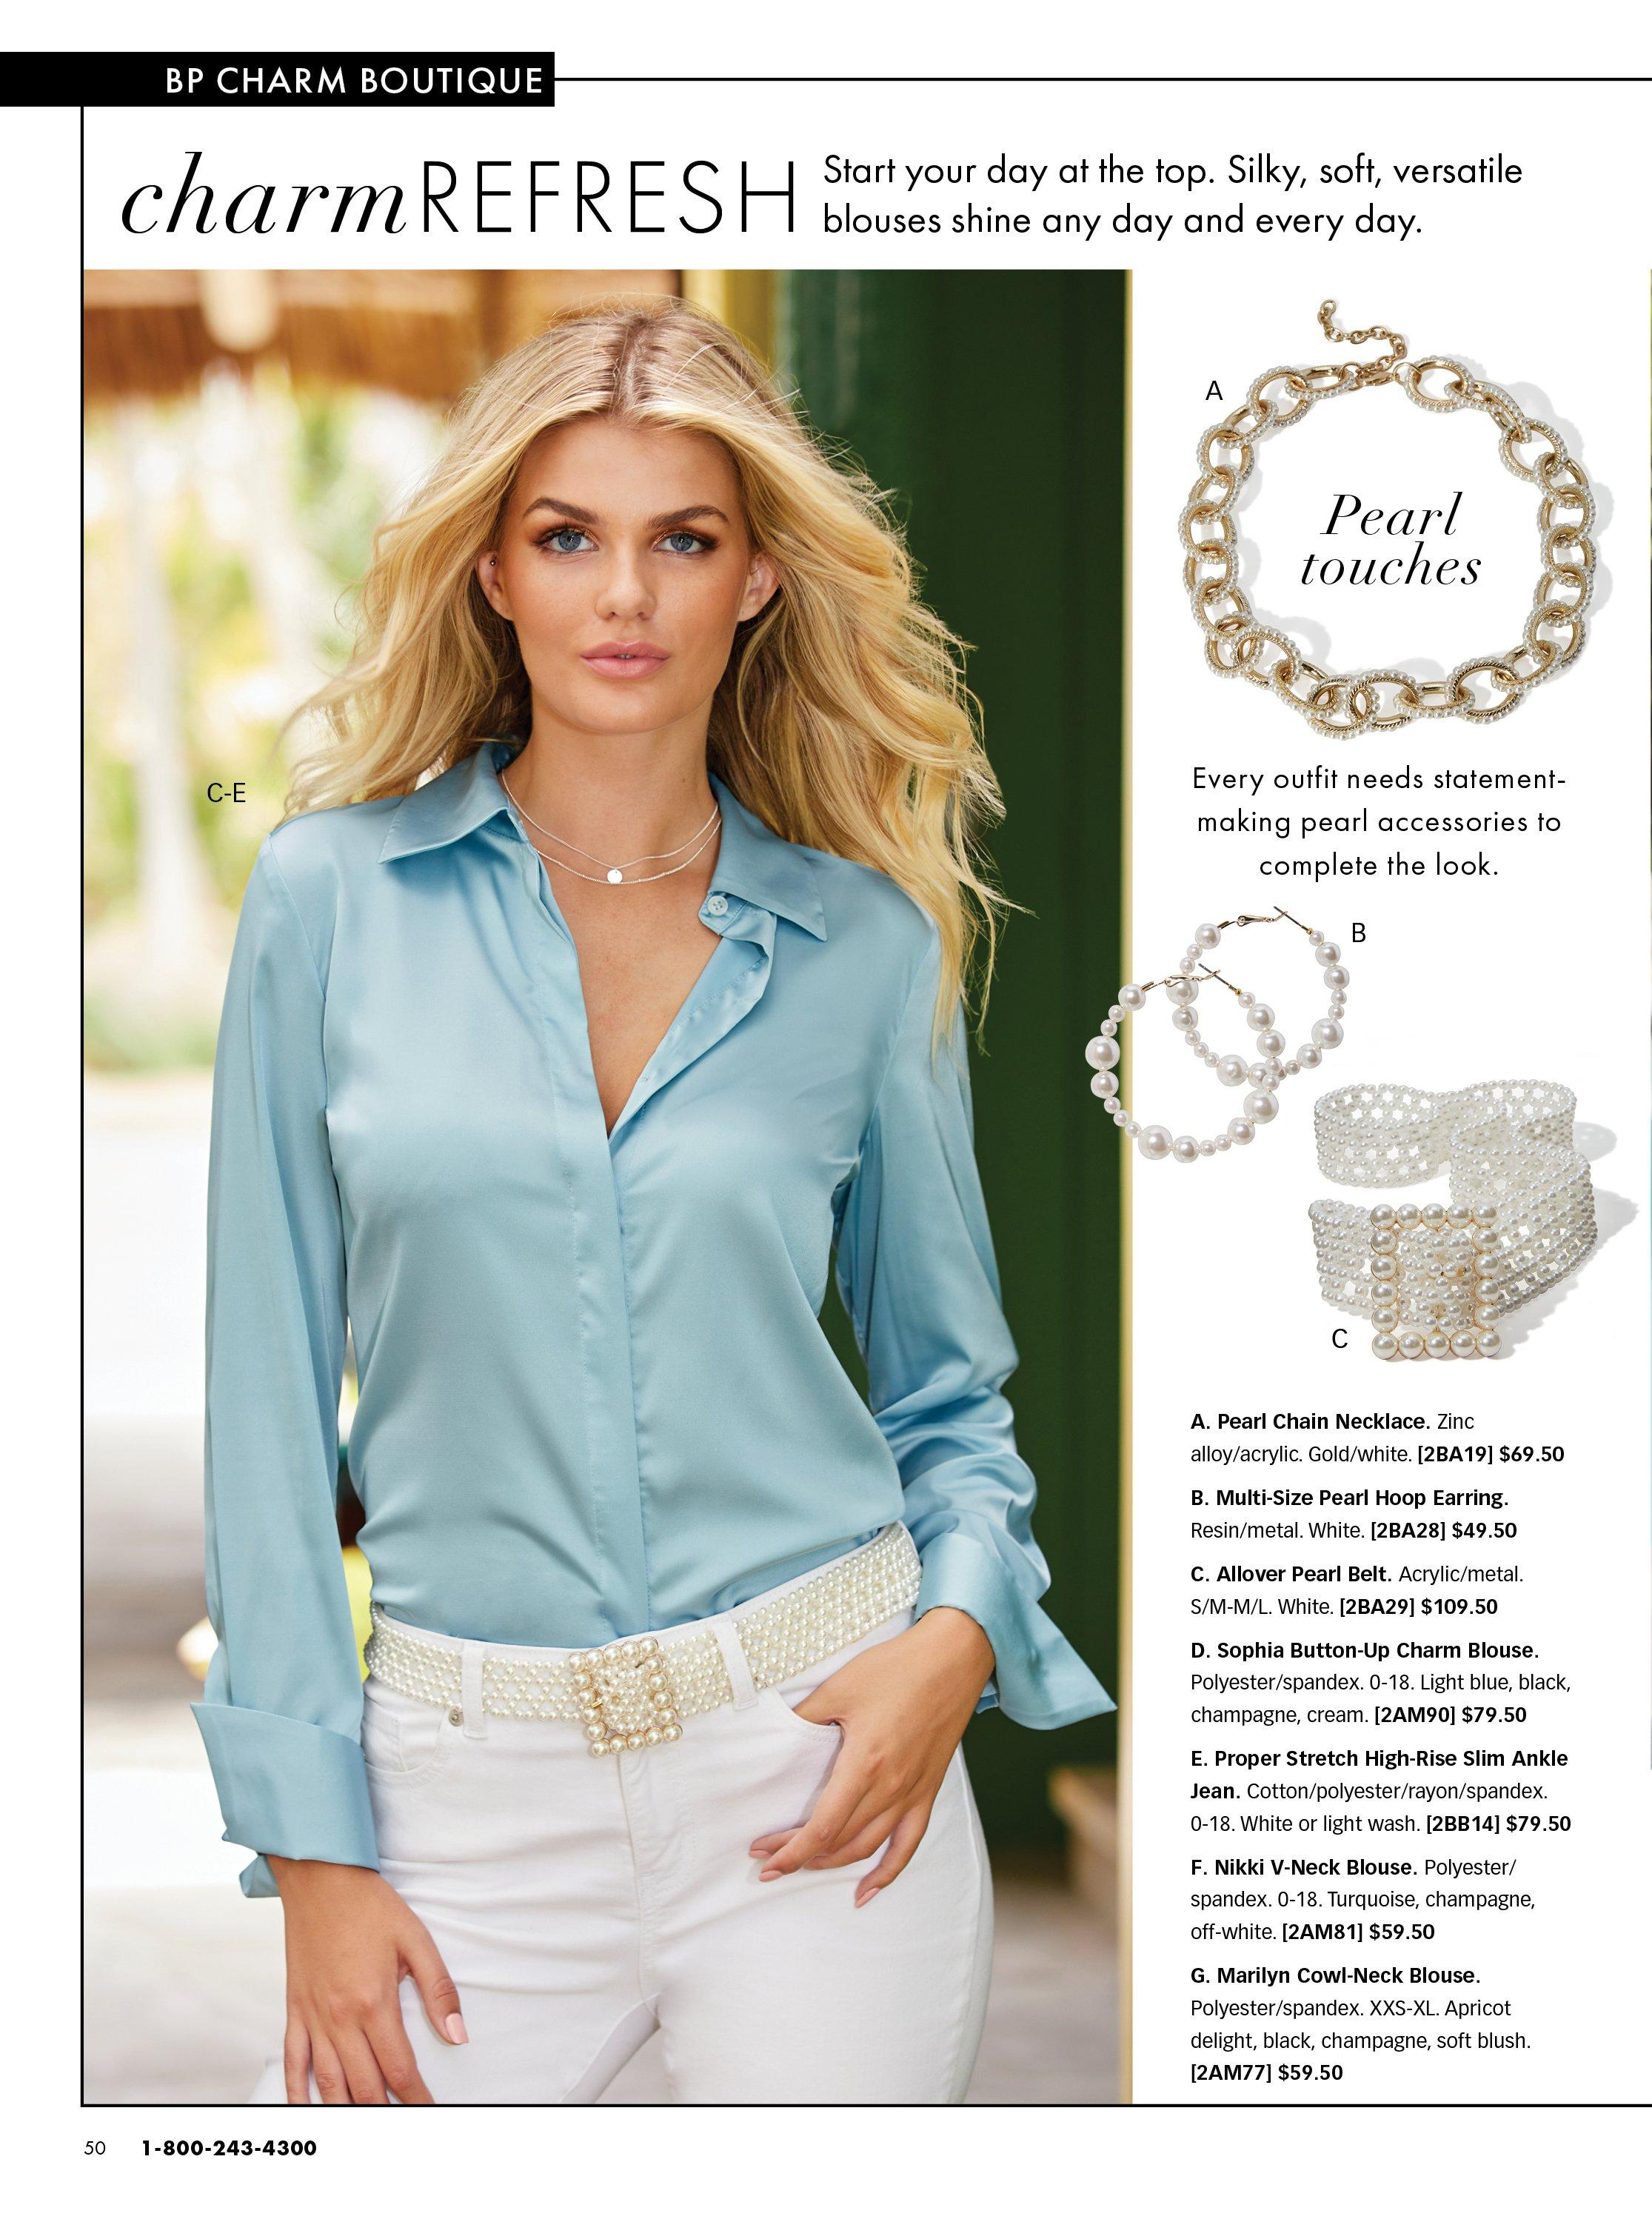 model wearing a light blue button down long-sleeve top, pearl embellished belt, and white pants. right panel shows gold chain necklace, pearl hoop earrings, and pearl embellished belt.